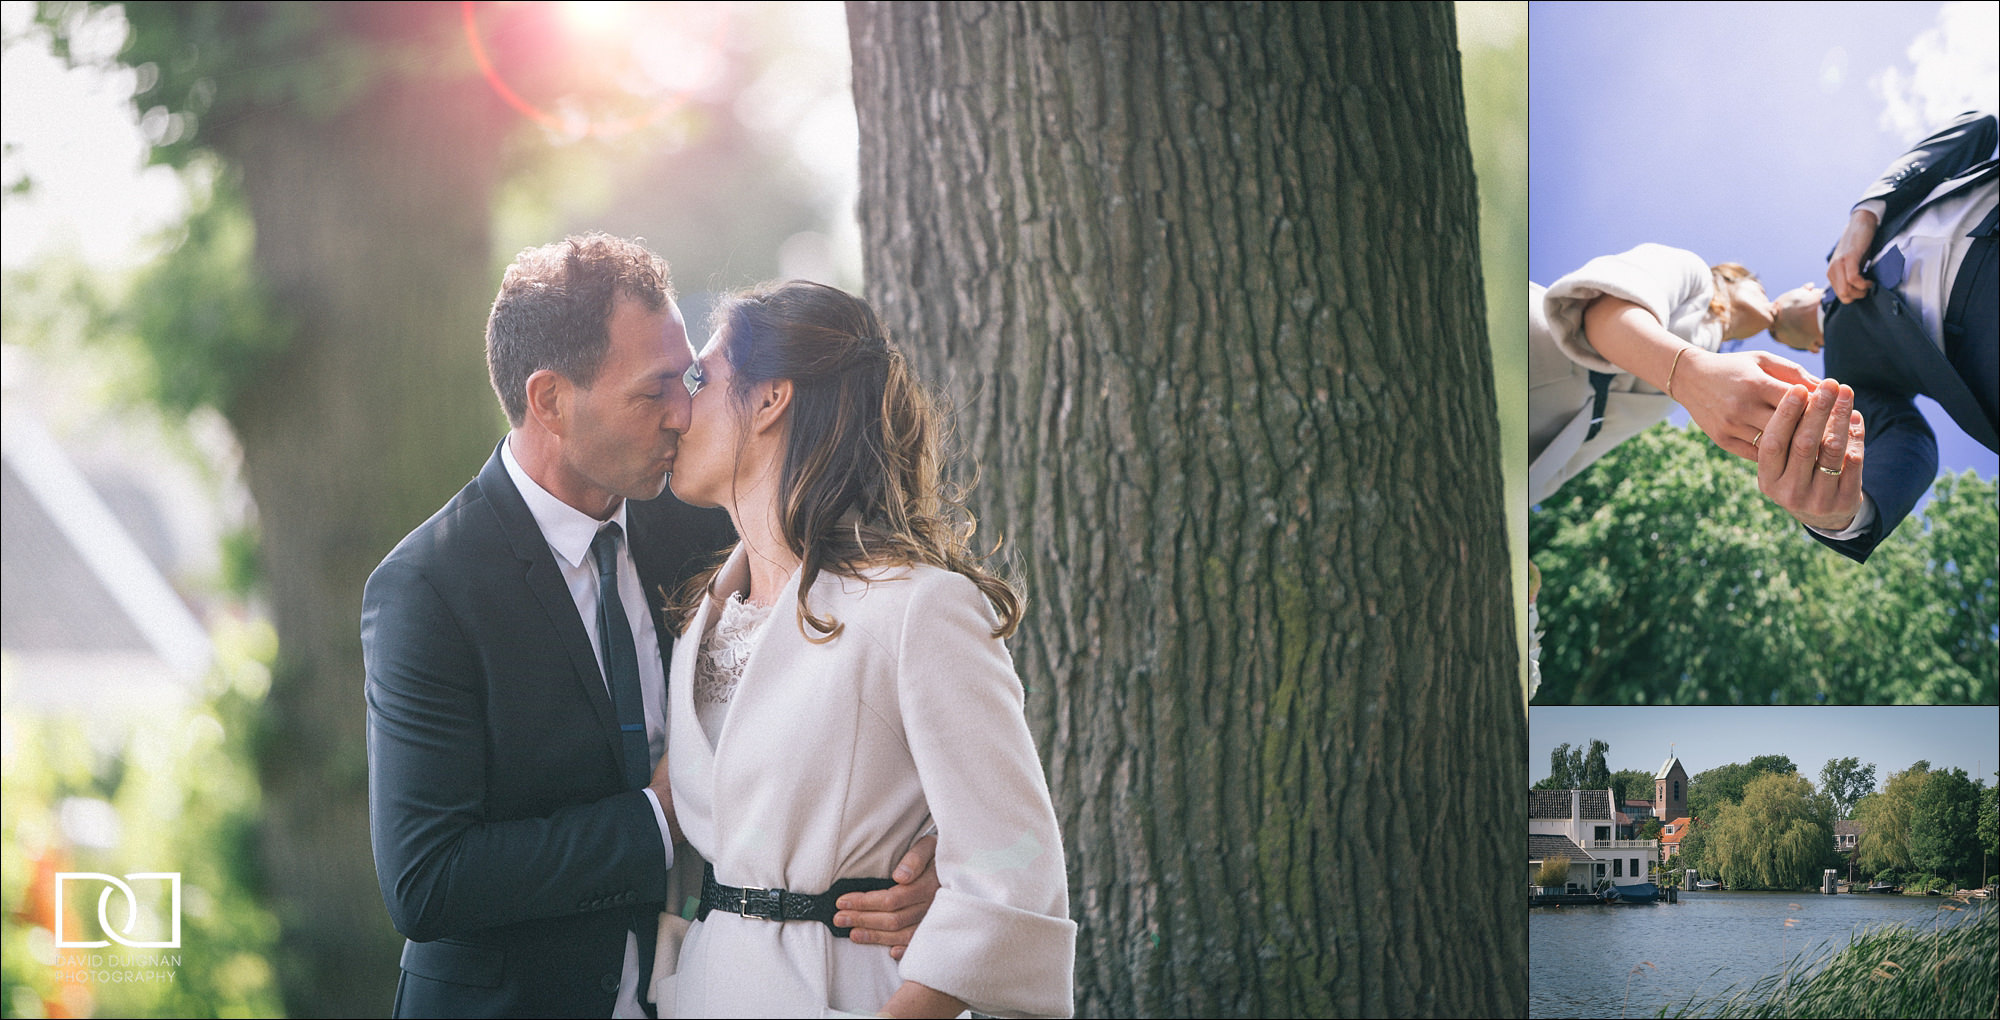 elegant bride and groom kissing at their wedding in Amsterdam